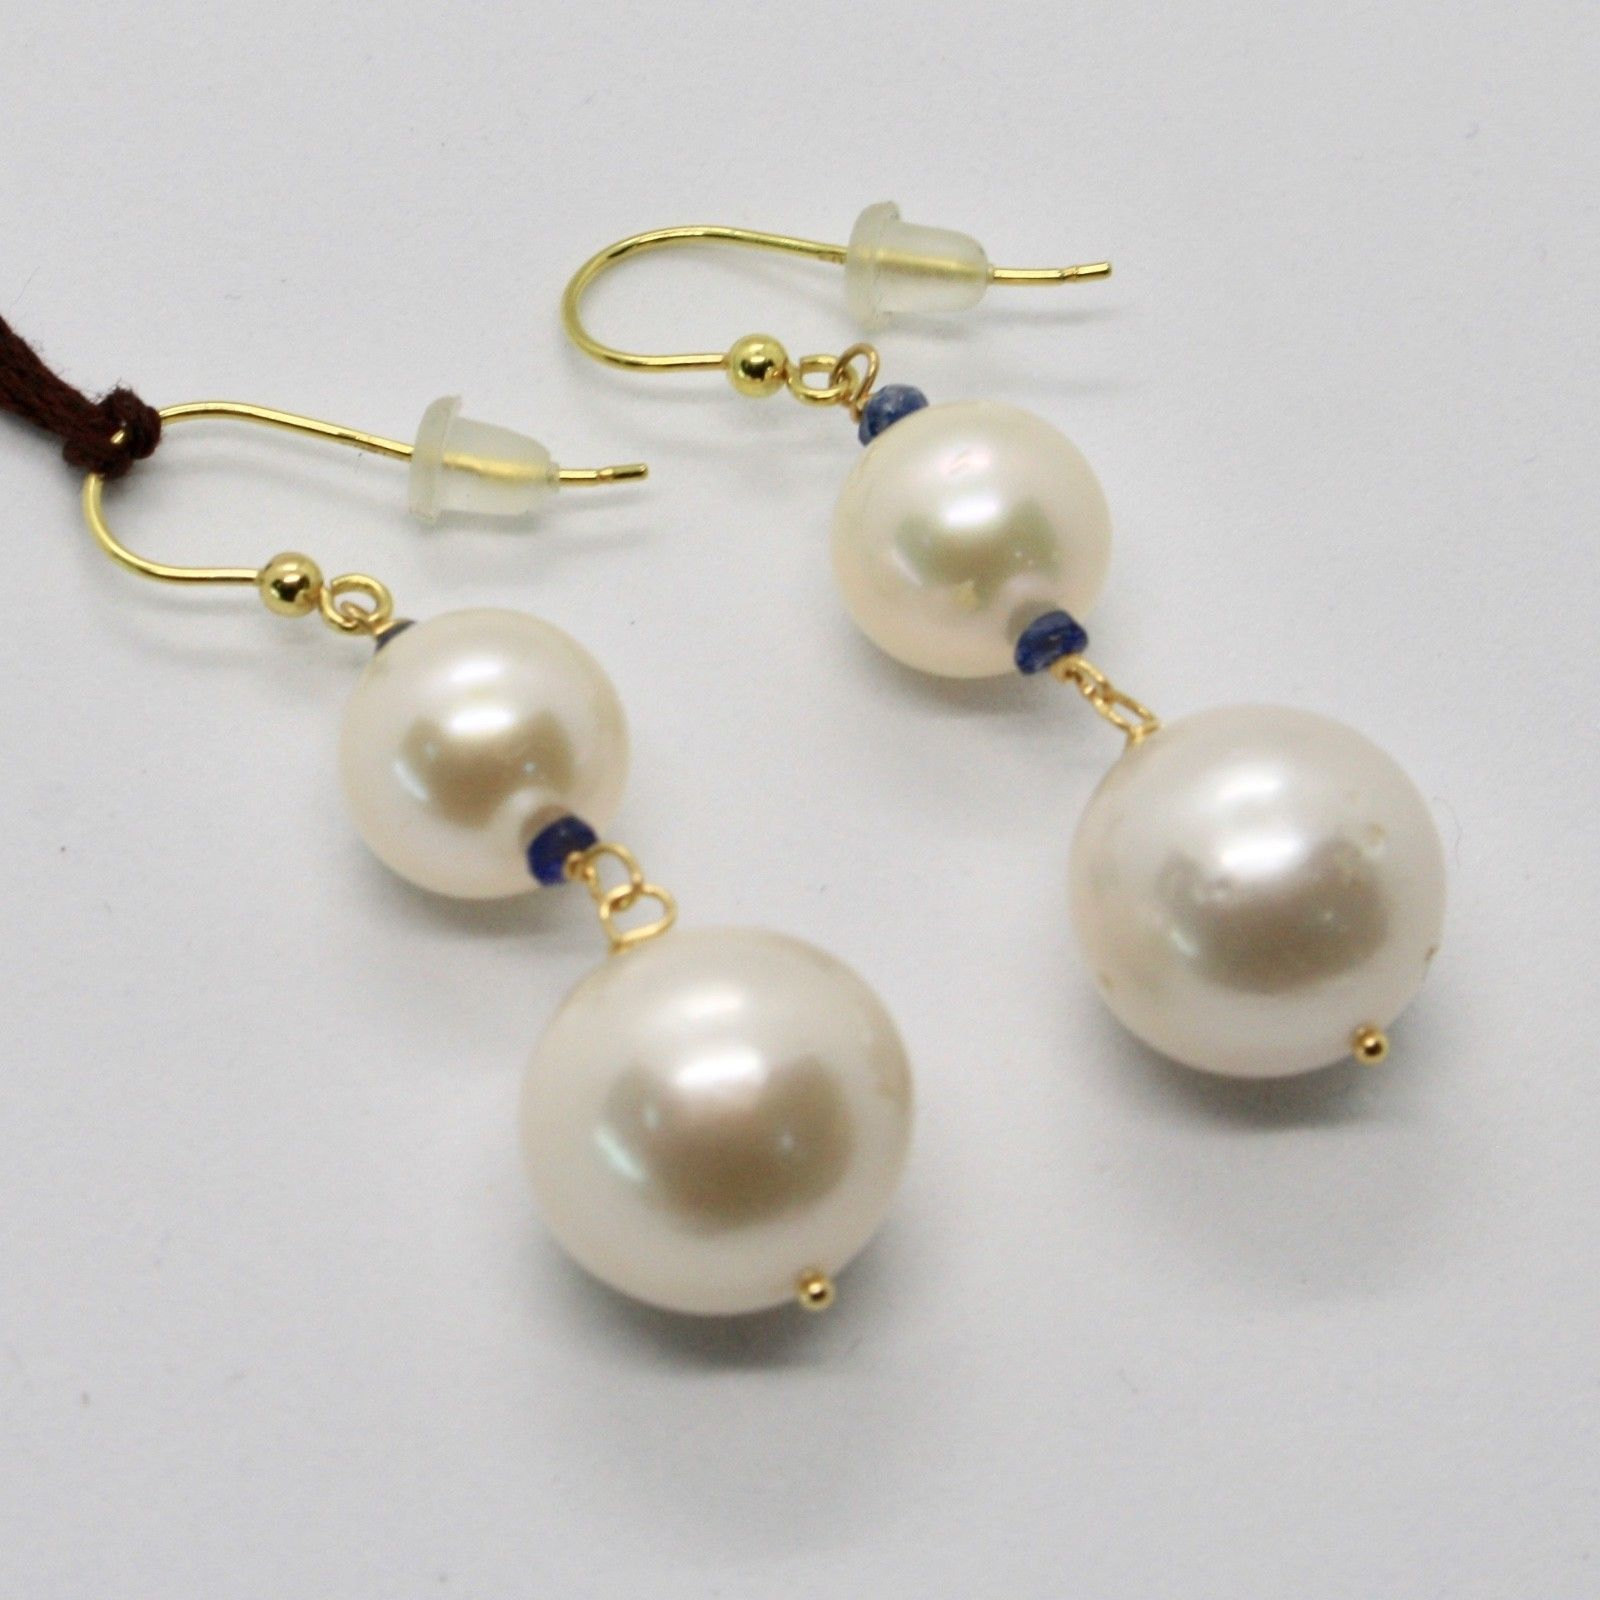 YELLOW GOLD EARRINGS 18KT 750 PEARLS OF WATER DOLCE AND SAPPHIRES MADE IN ITALY